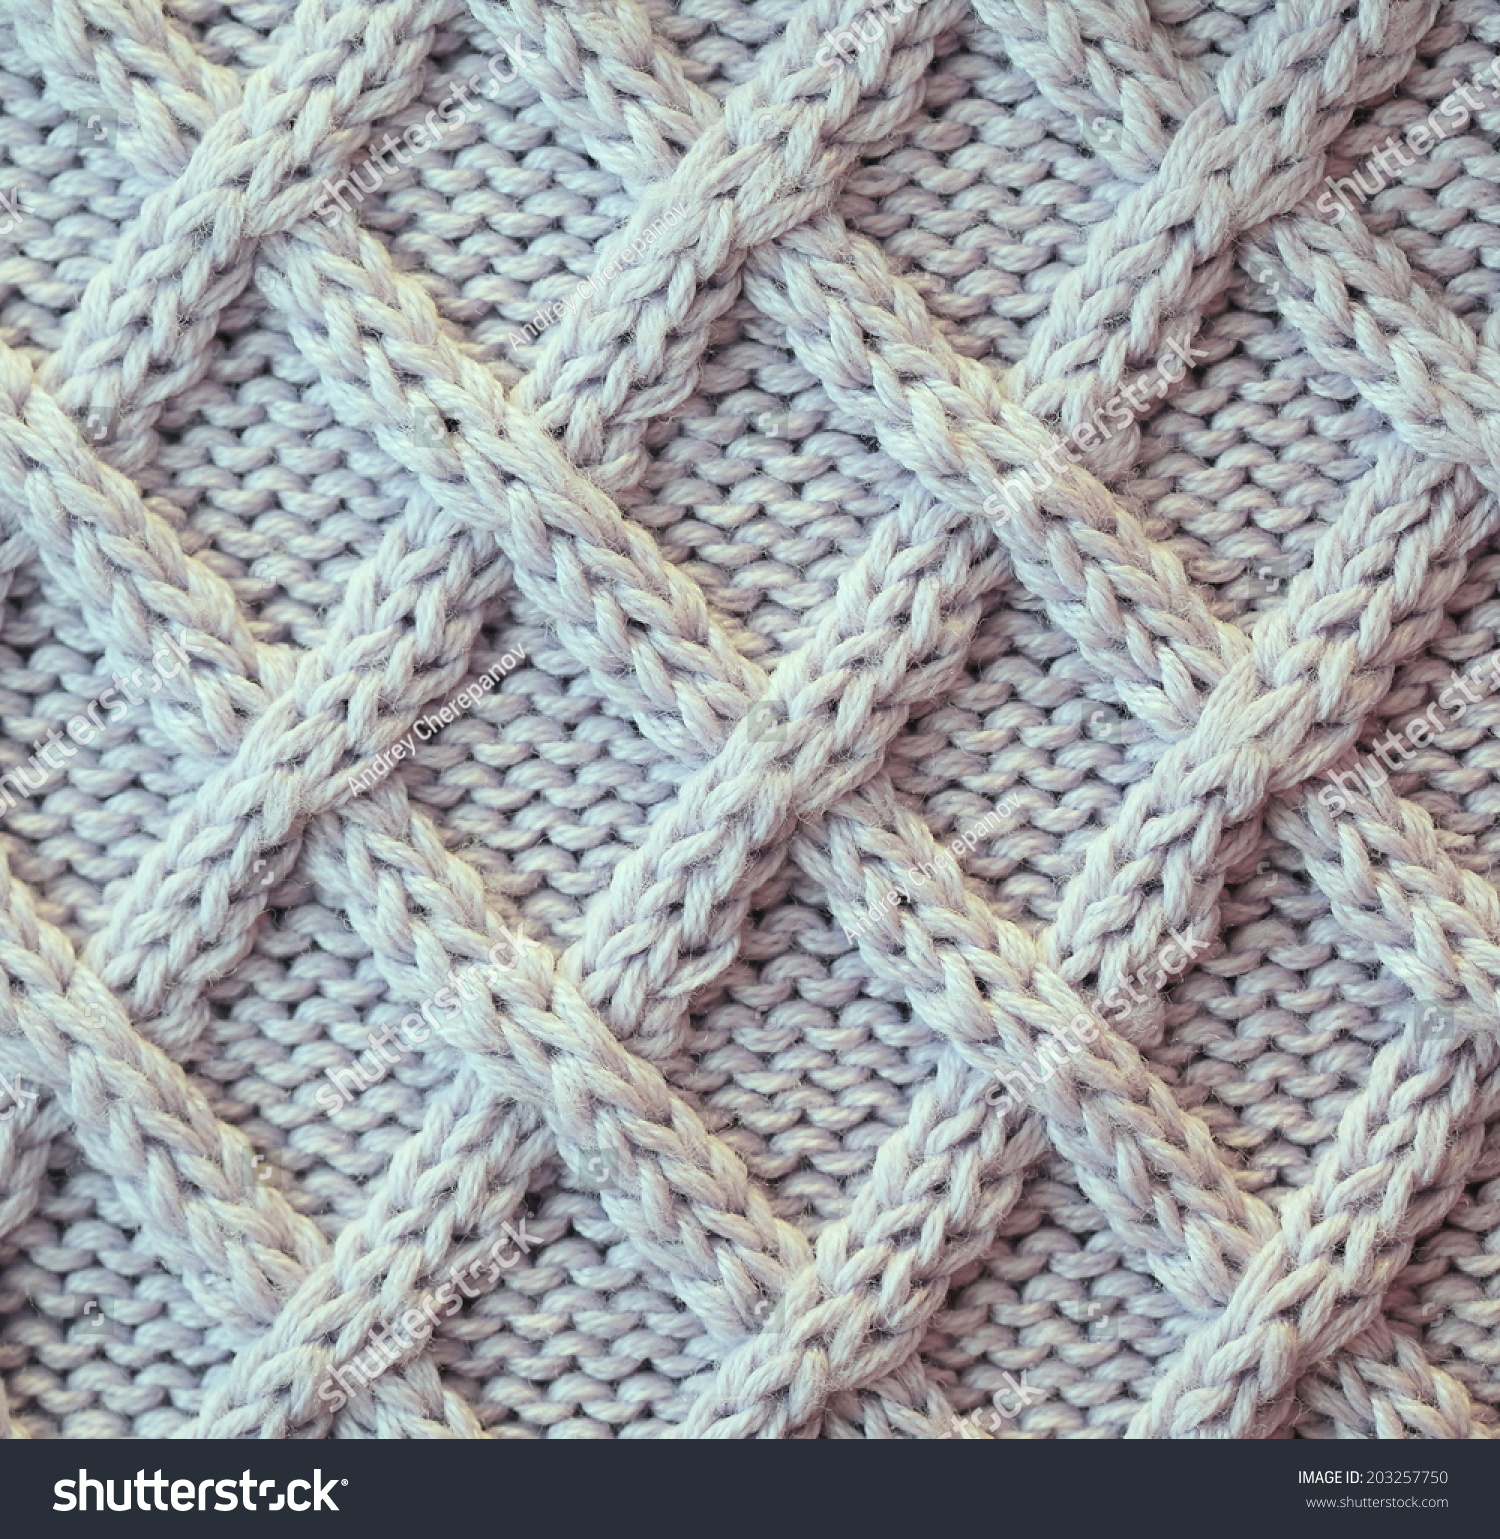 Unusual Abstract Light Grey Knitted Pattern Background Texture